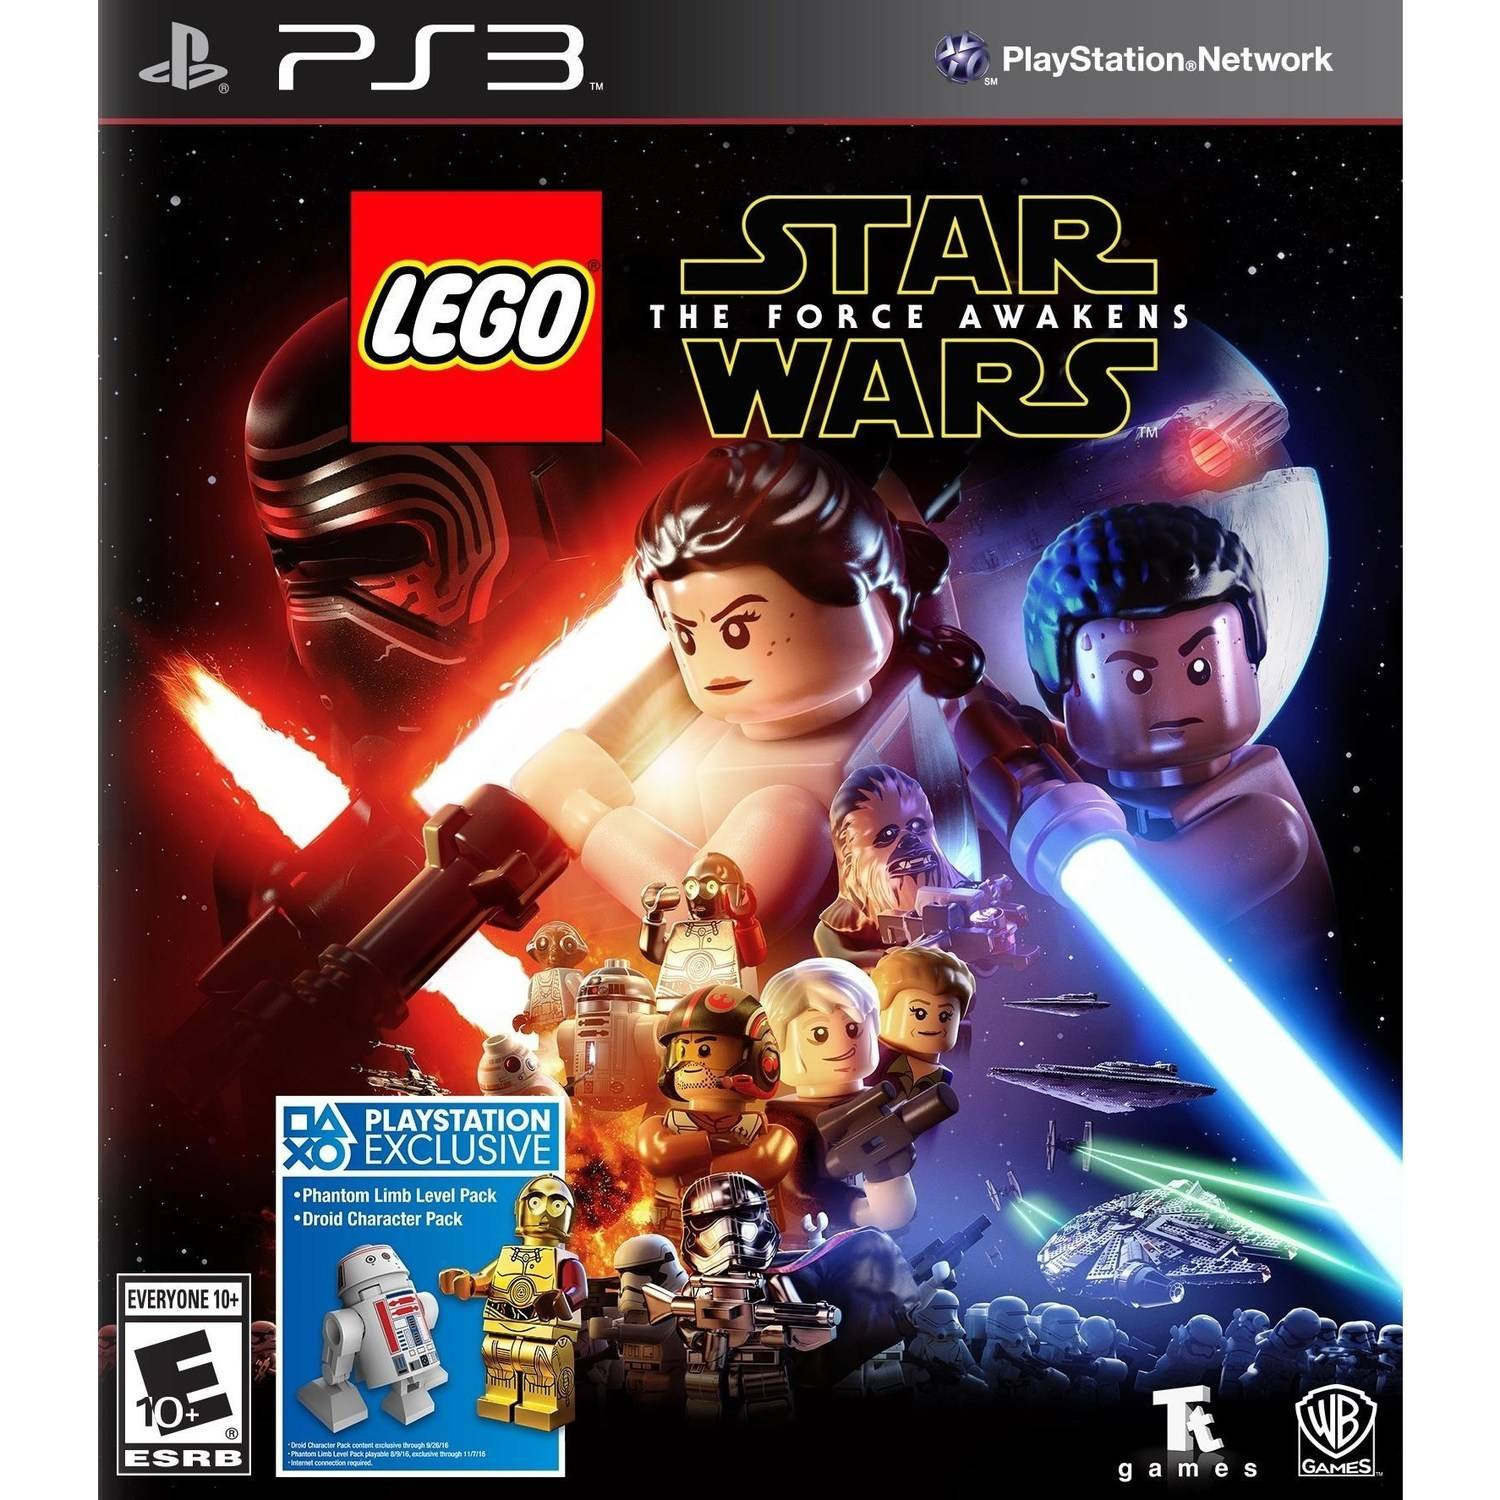 Lego Star Wars The Force Awakens - Pre-Owned (PS3)